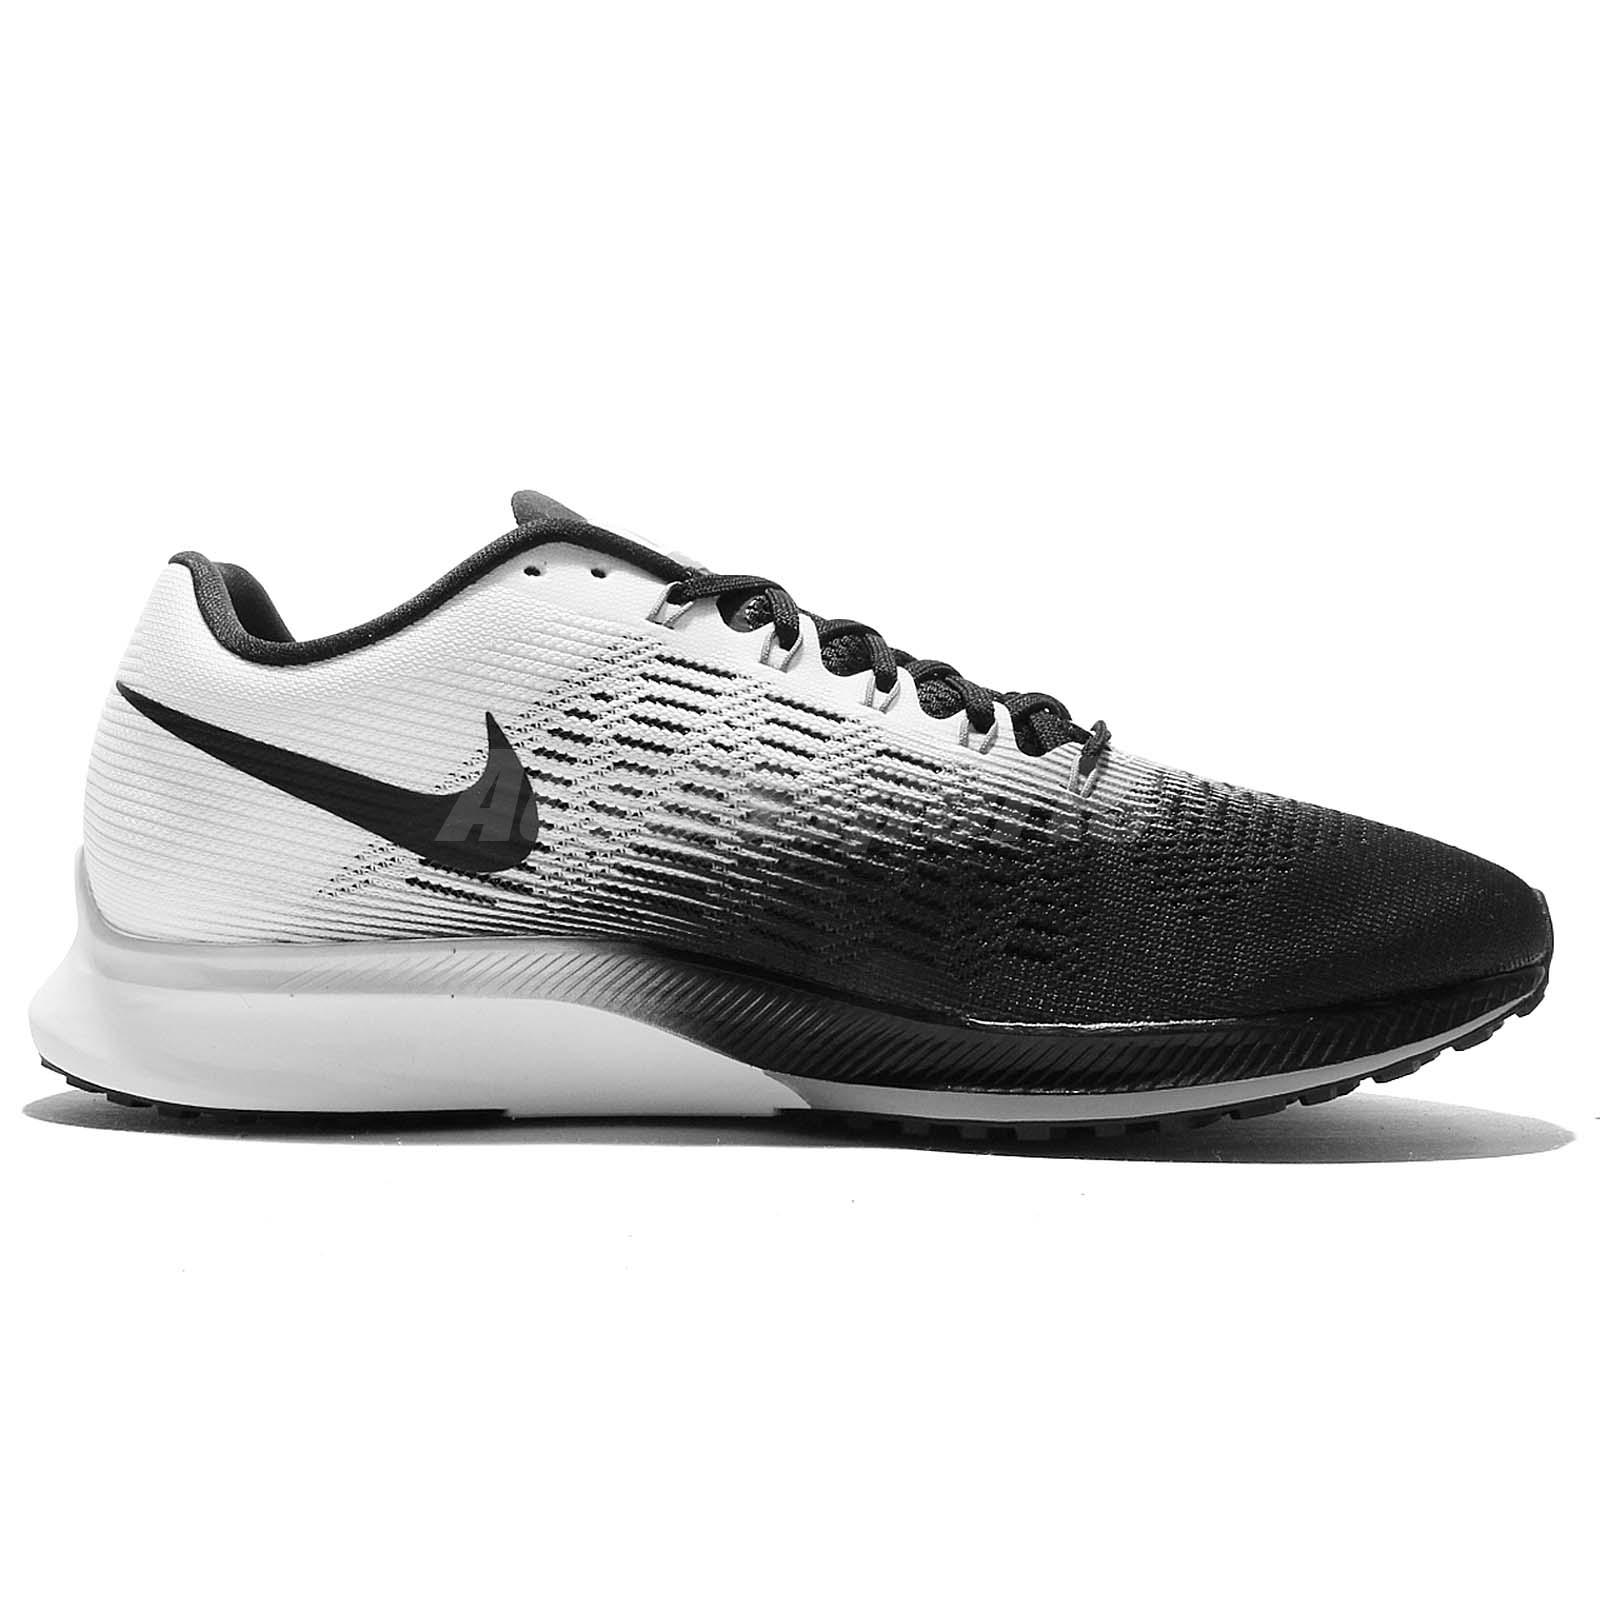 b0b94300b25b8 Nike Air Zoom Elite 9 IX Black White Men Running Shoes Sneakers ...